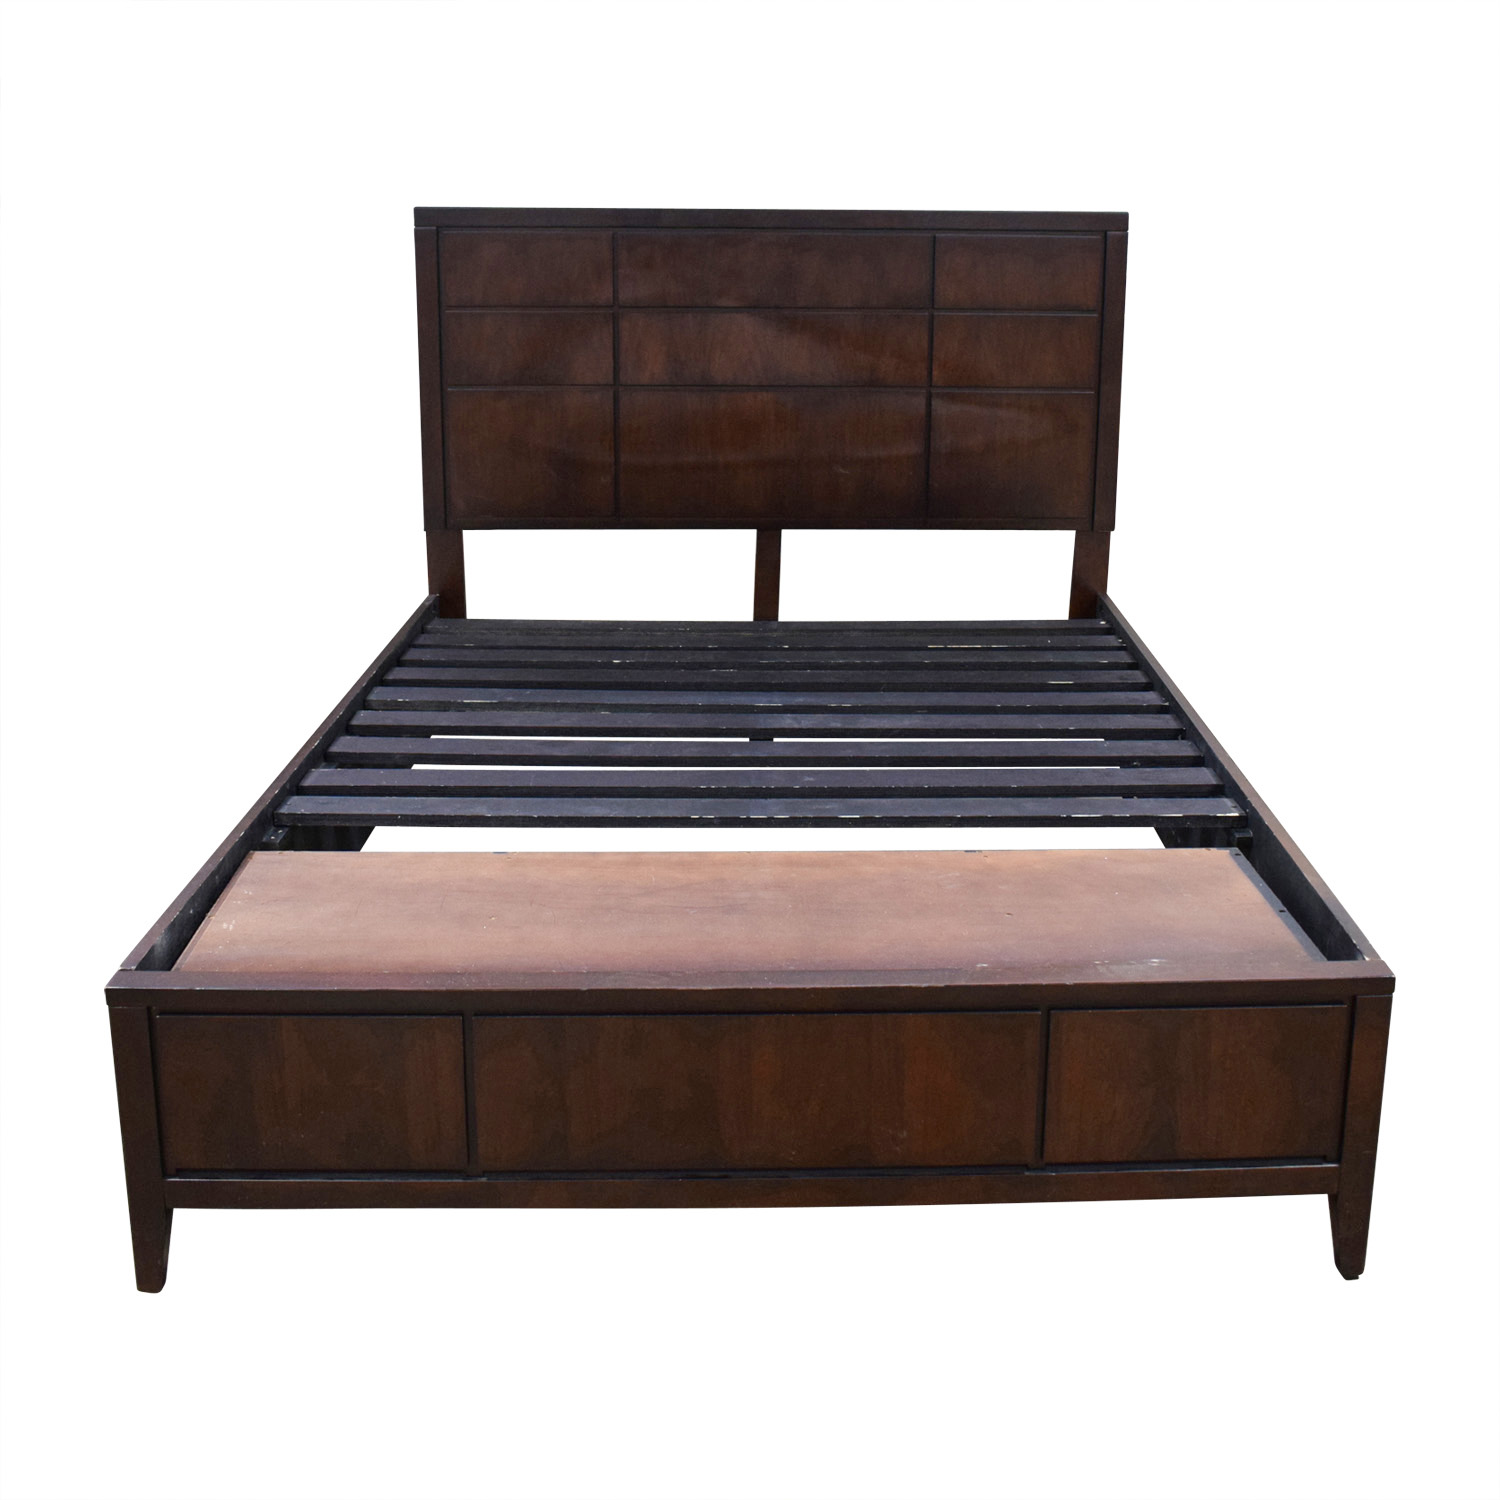 buy Raymour & Flanigan Platform Queen Size Bed Frame with Storage Raymour & Flanigan Bed Frames